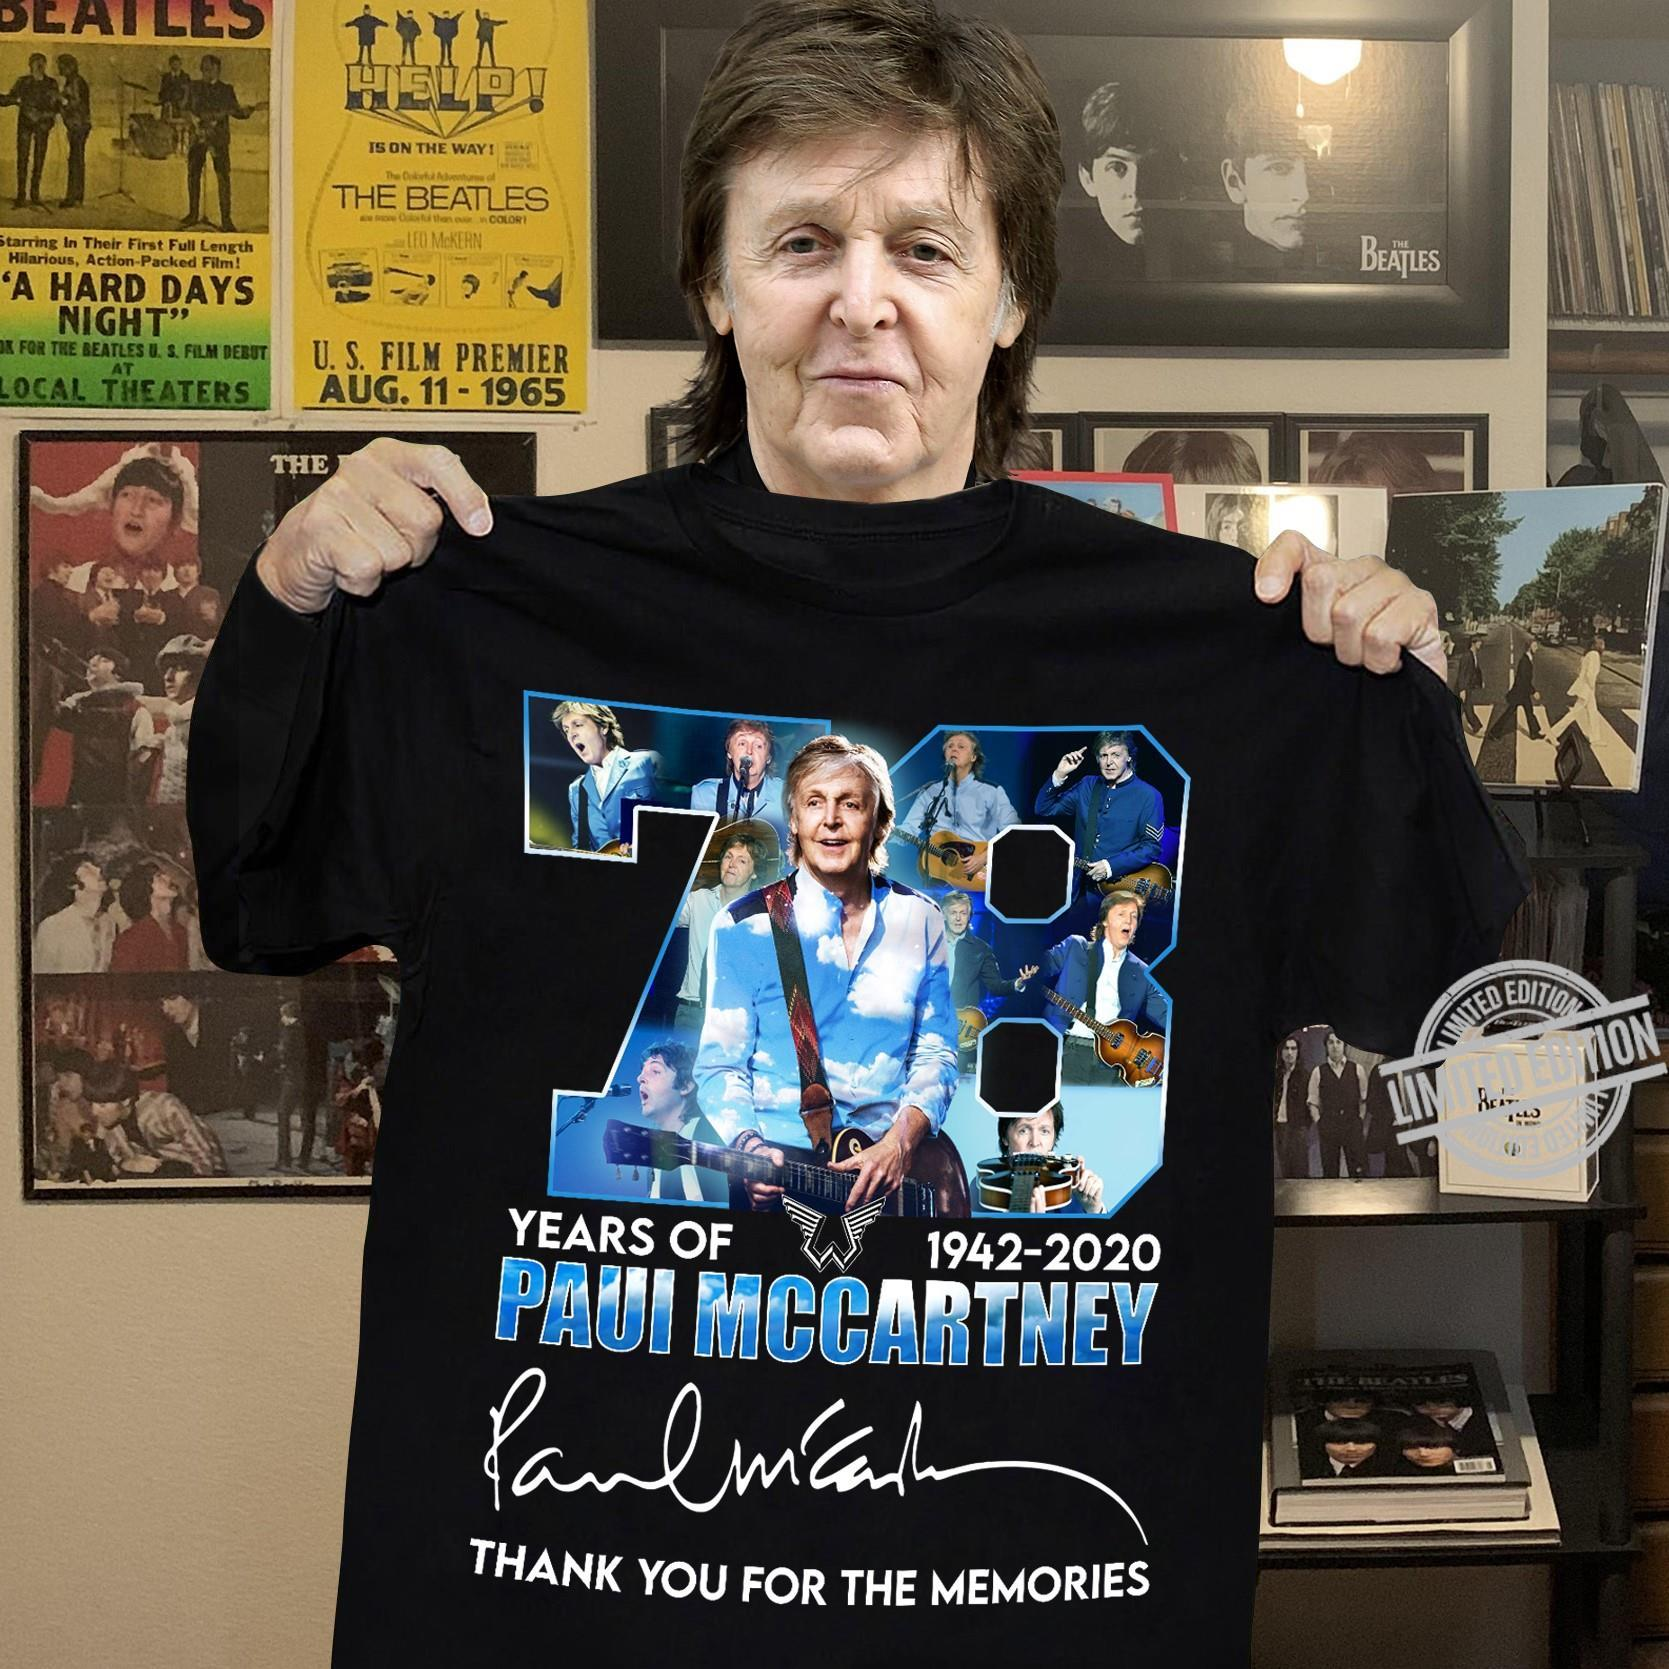 78 Years Of 1942-2020 Paui Mccartney Thank You For The Memories Shirt